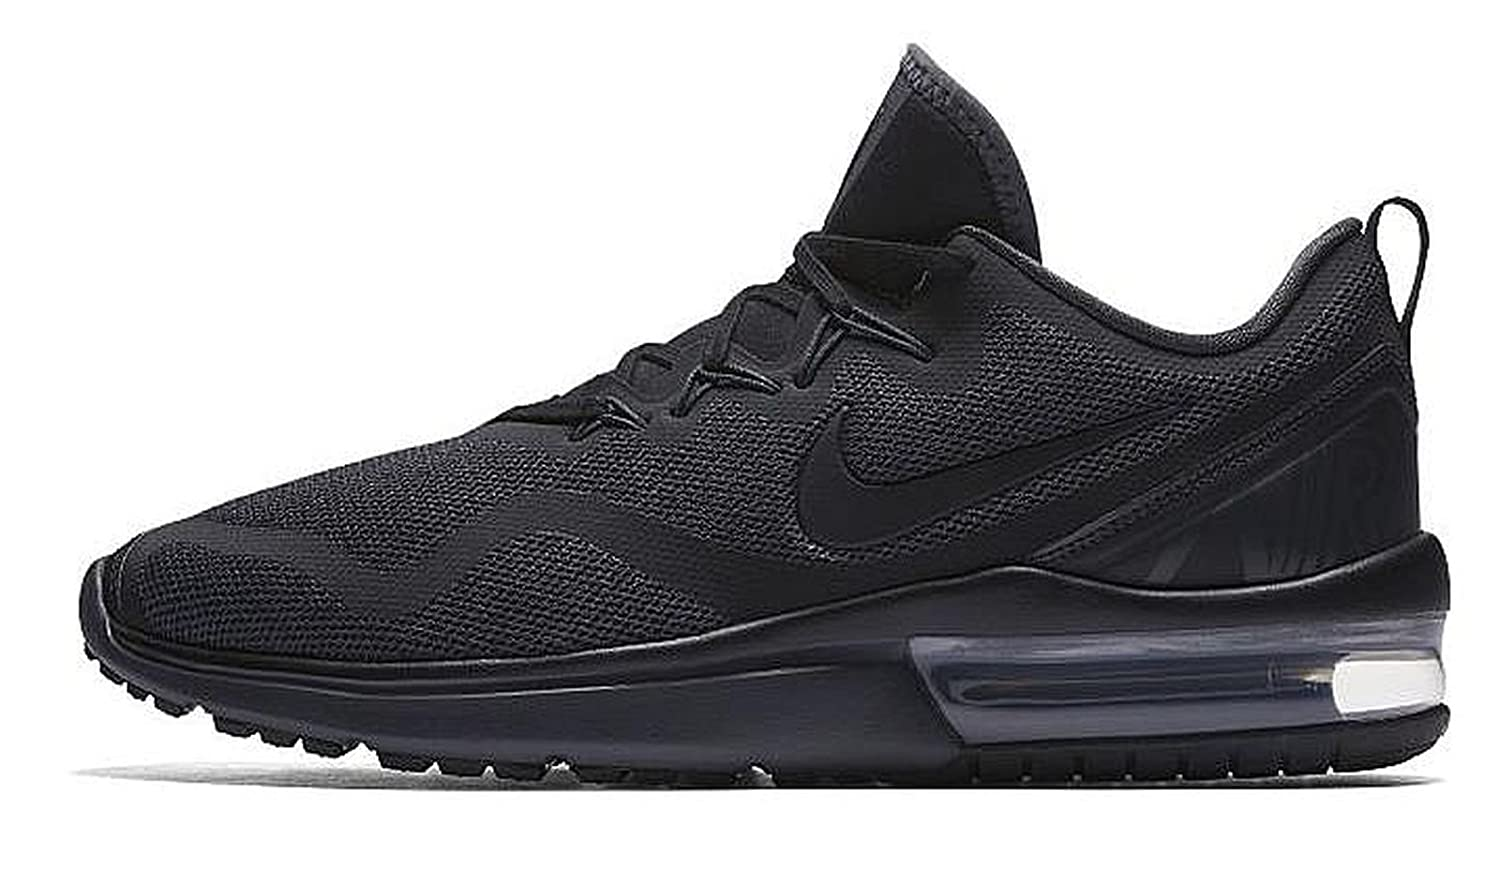 7a5747d57a Nike Air Max Fury Running Shoes Men's Black Sneakers (11 D(M) US,  Black/Anthracite/Black 002): Buy Online at Low Prices in India - Amazon.in